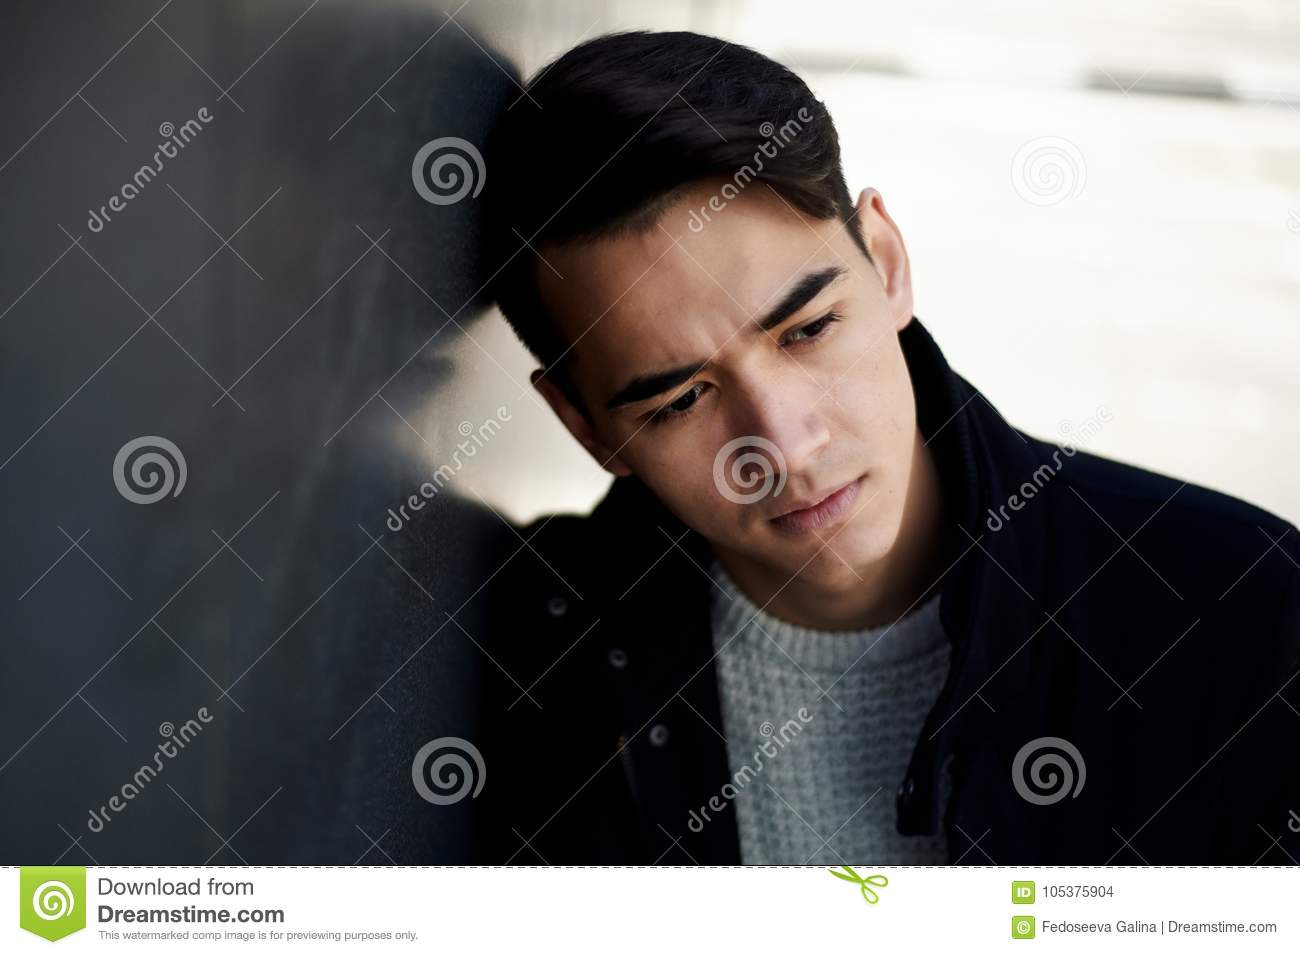 A Young Man Thin With Dark Hair And Brown Eyes Portrait Model